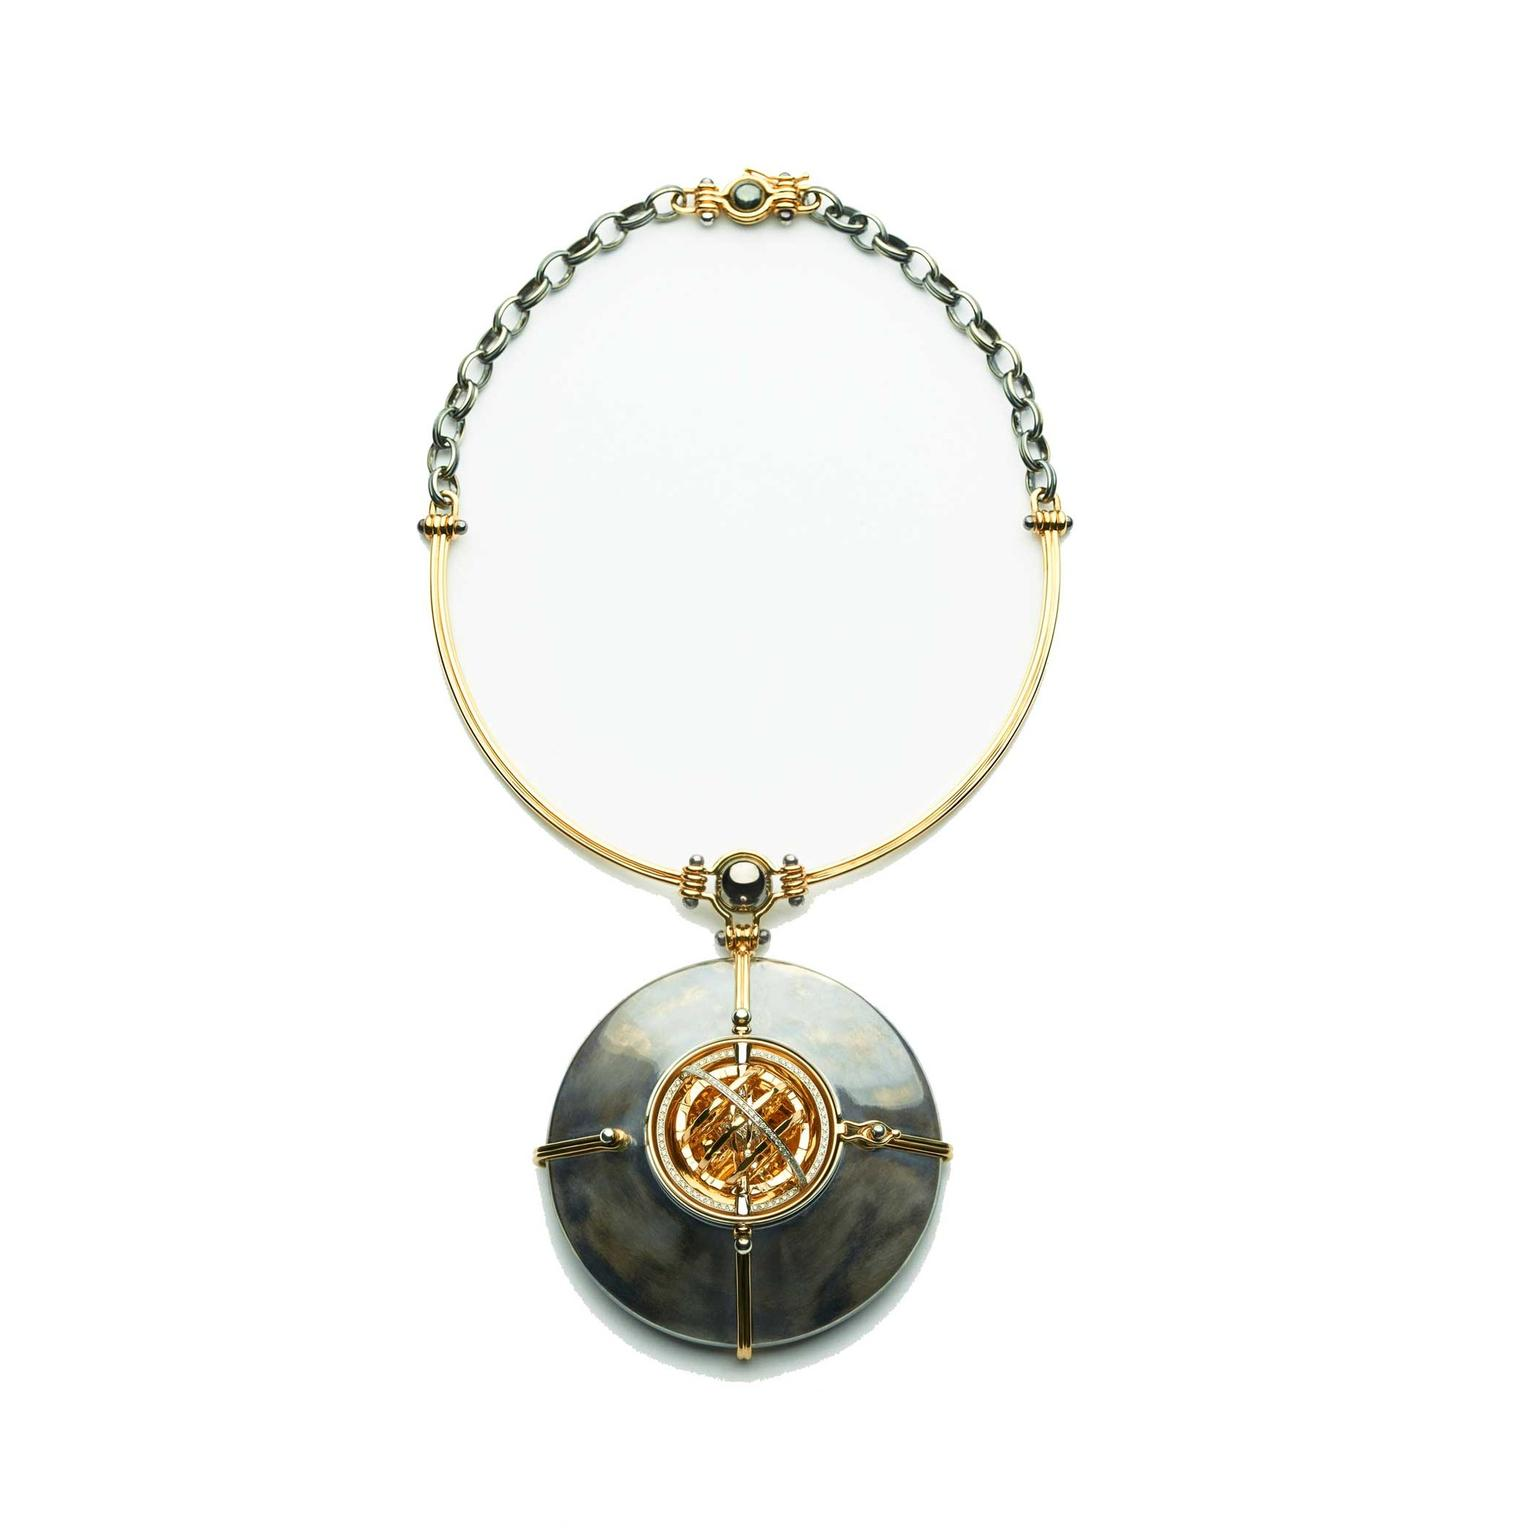 Elie Top Scaphandre pendant necklace